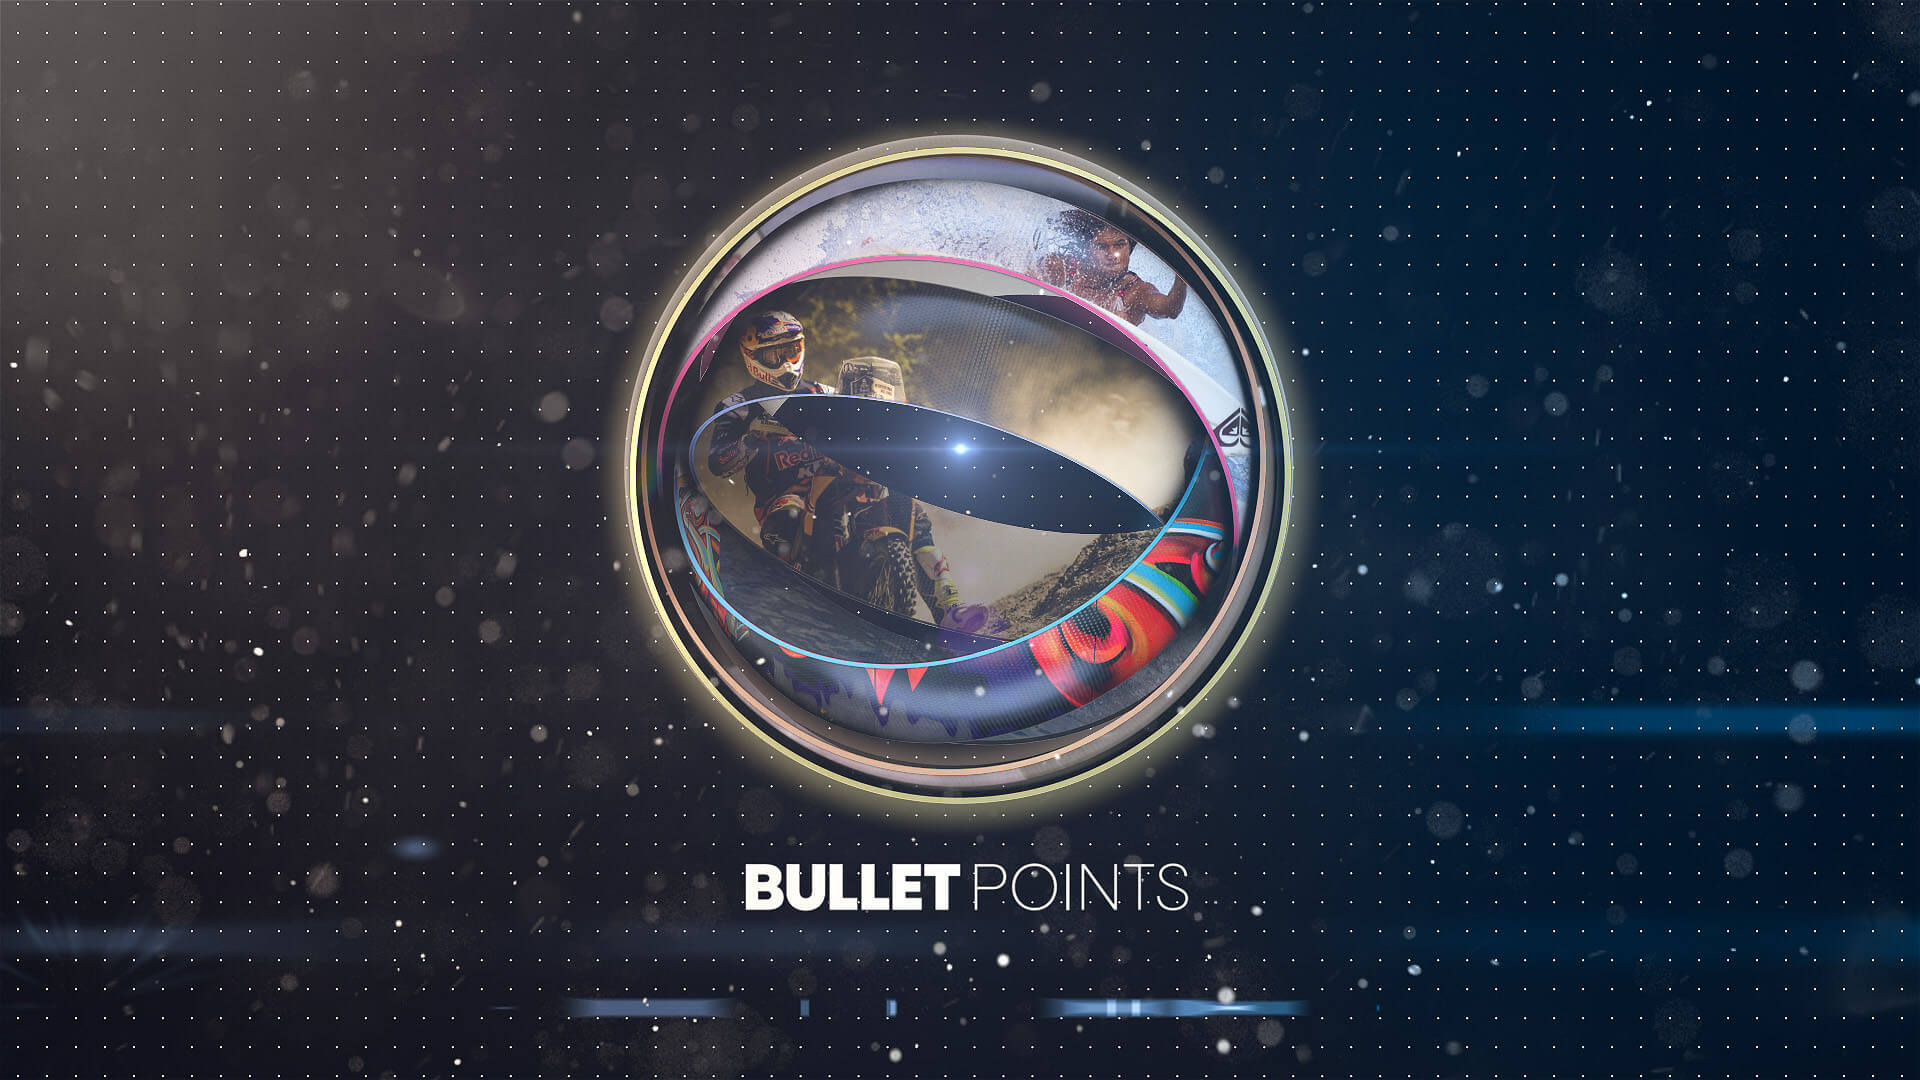 RED BULL BULLET POINTS